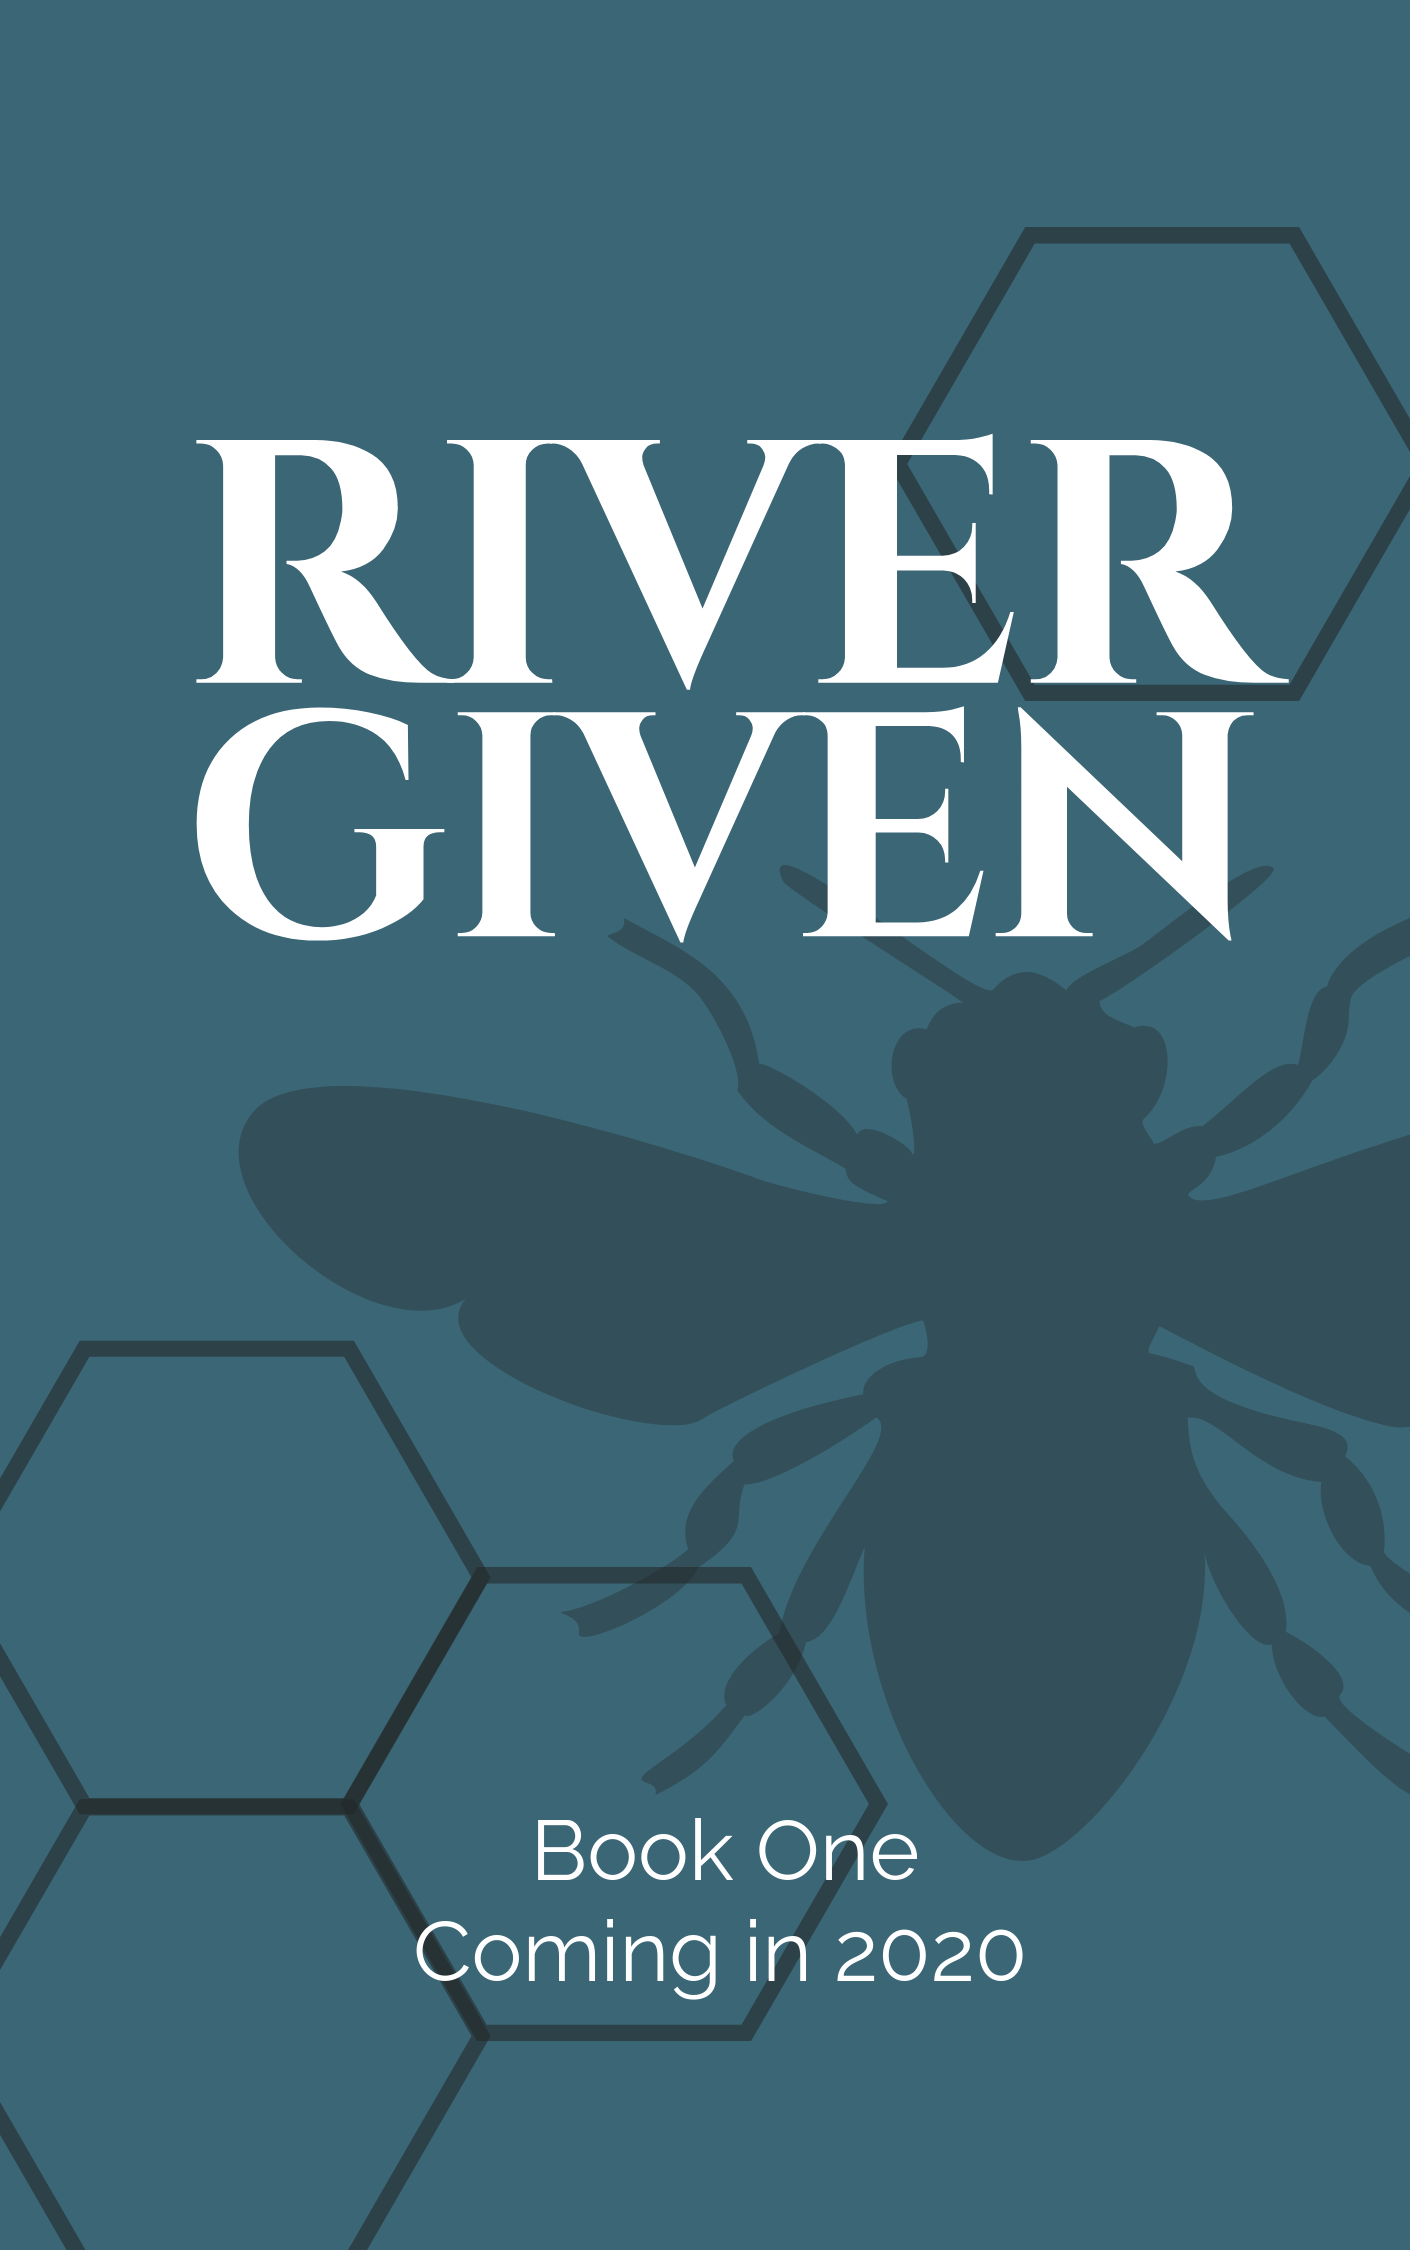 Copy of River Given Book copy.png